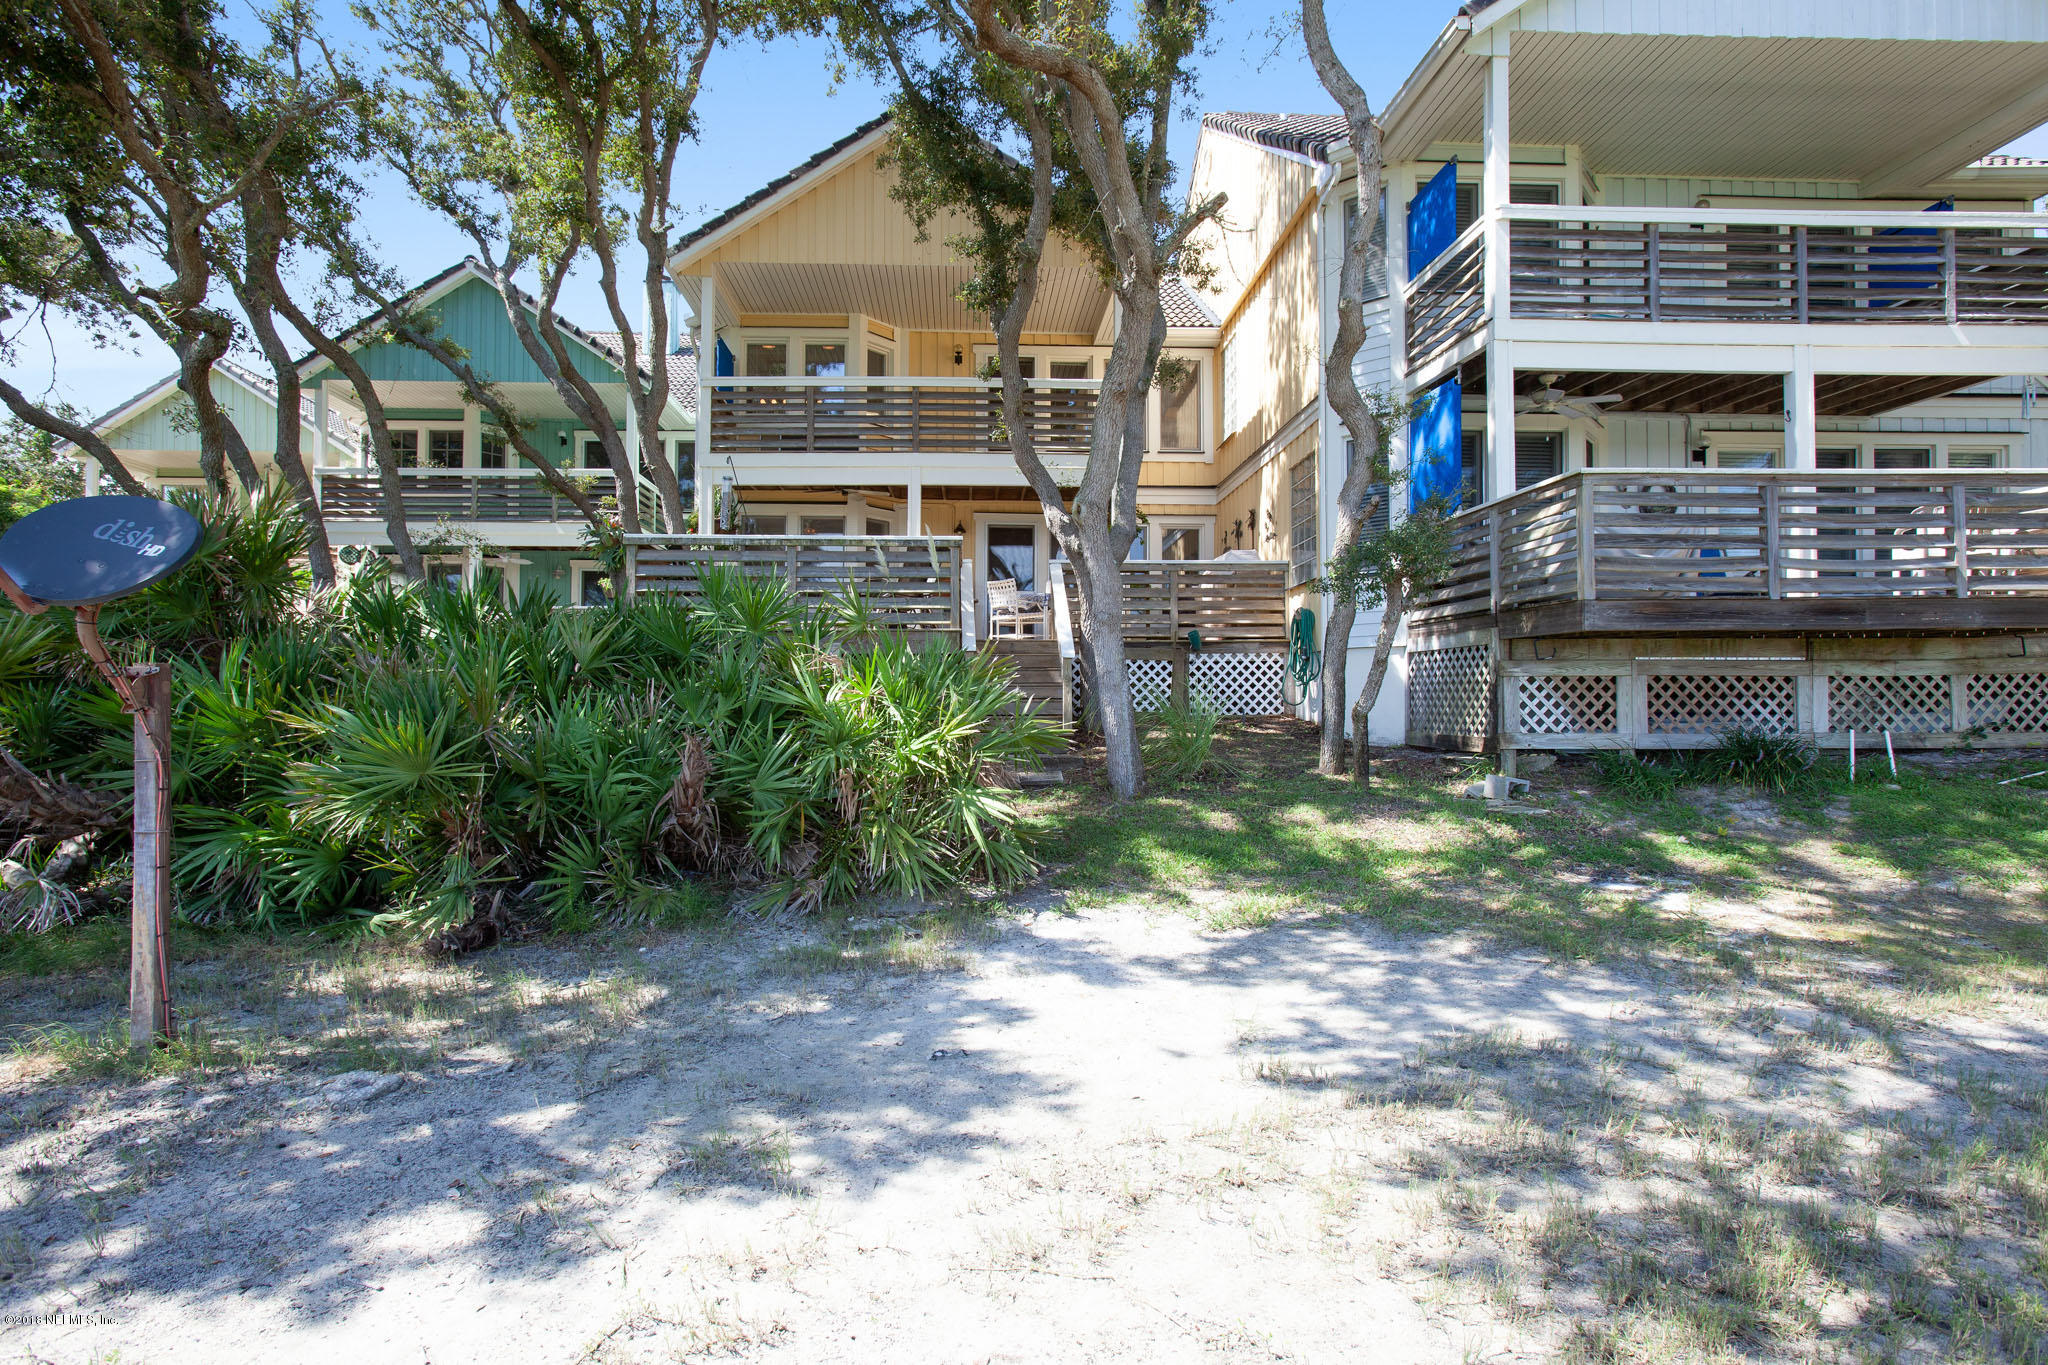 549 CARCABA, ST AUGUSTINE, FLORIDA 32084, 3 Bedrooms Bedrooms, ,2 BathroomsBathrooms,Residential - townhome,For sale,CARCABA,953916